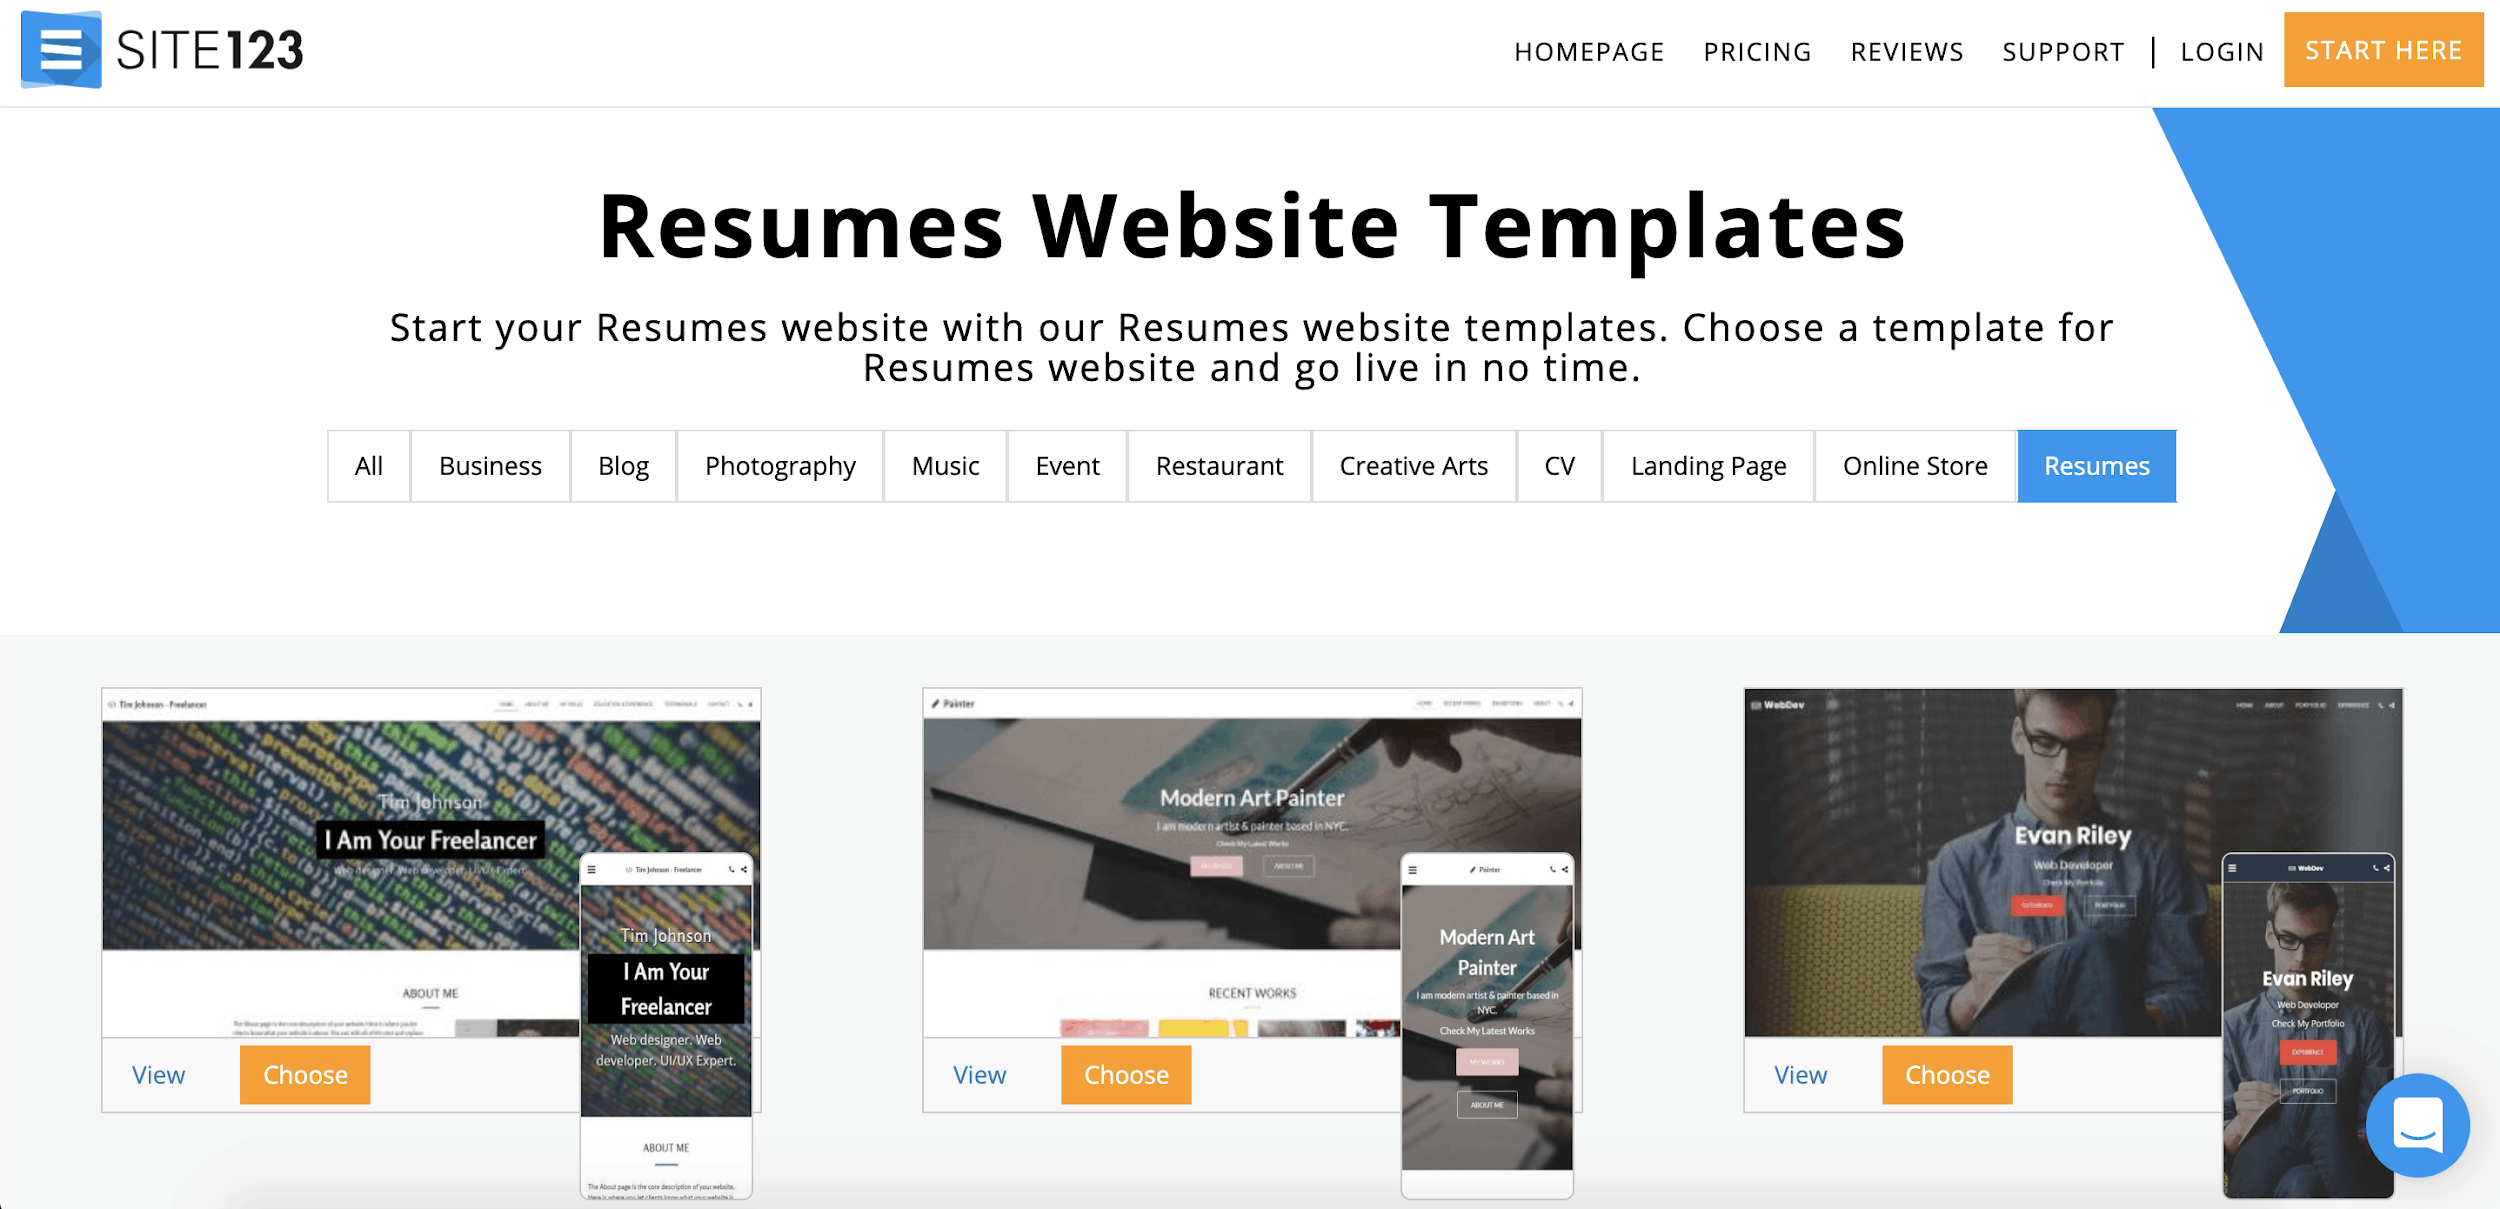 Site123 resume templates